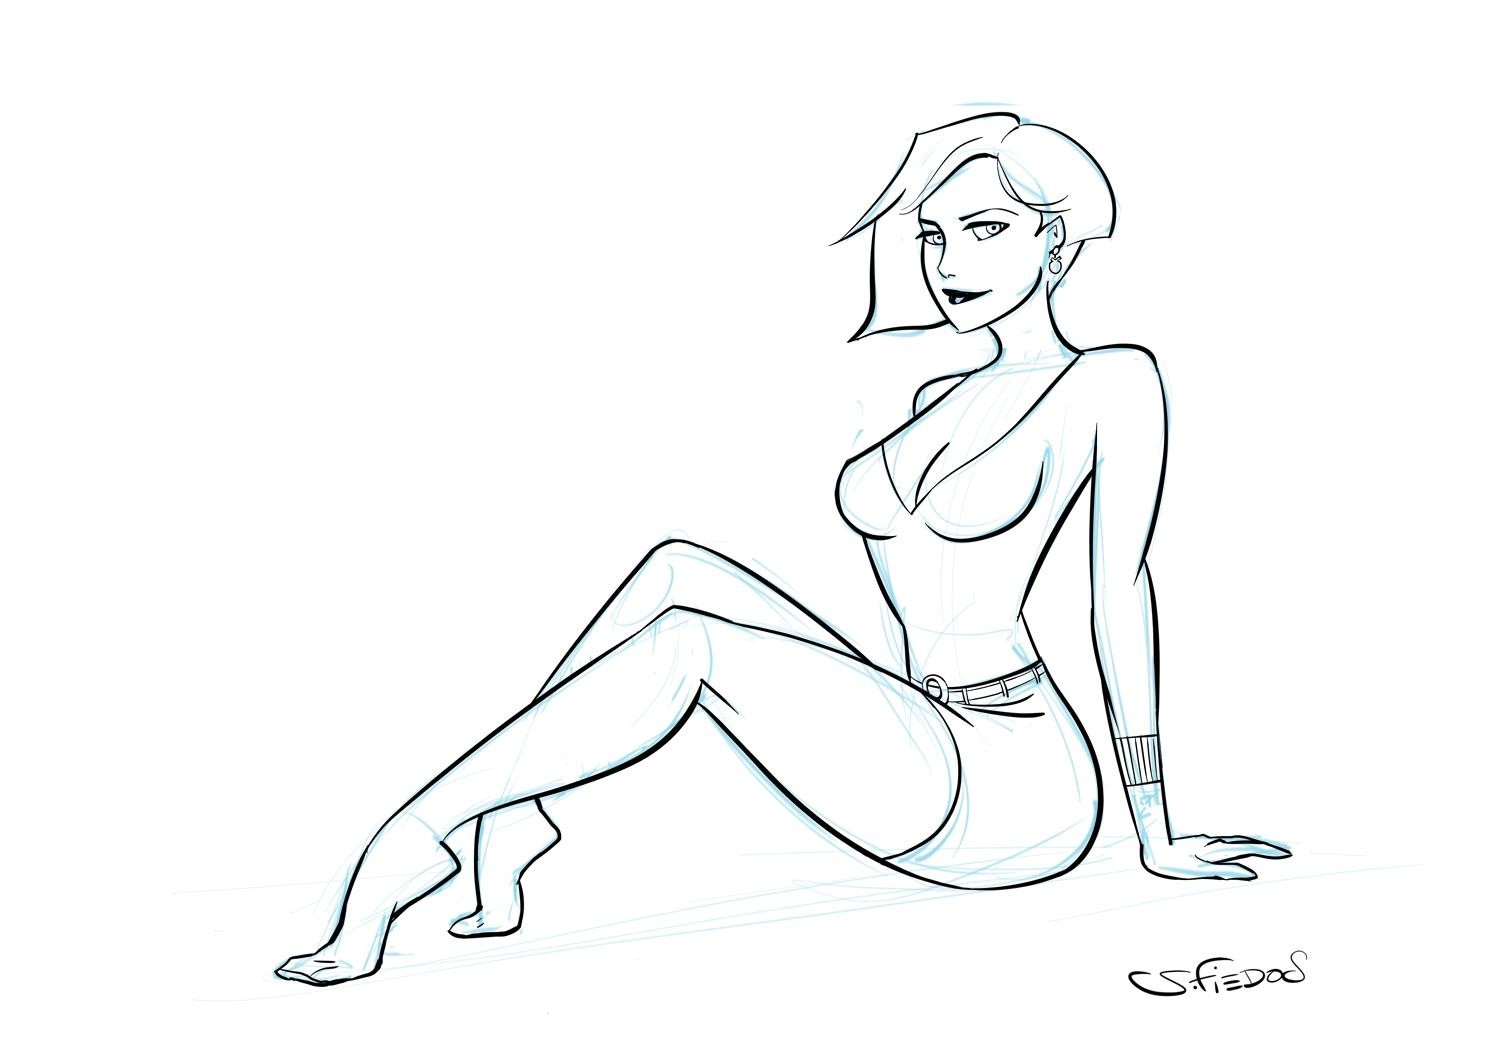 Serge fiedos quickpinupgirl by serge fiedos wip1